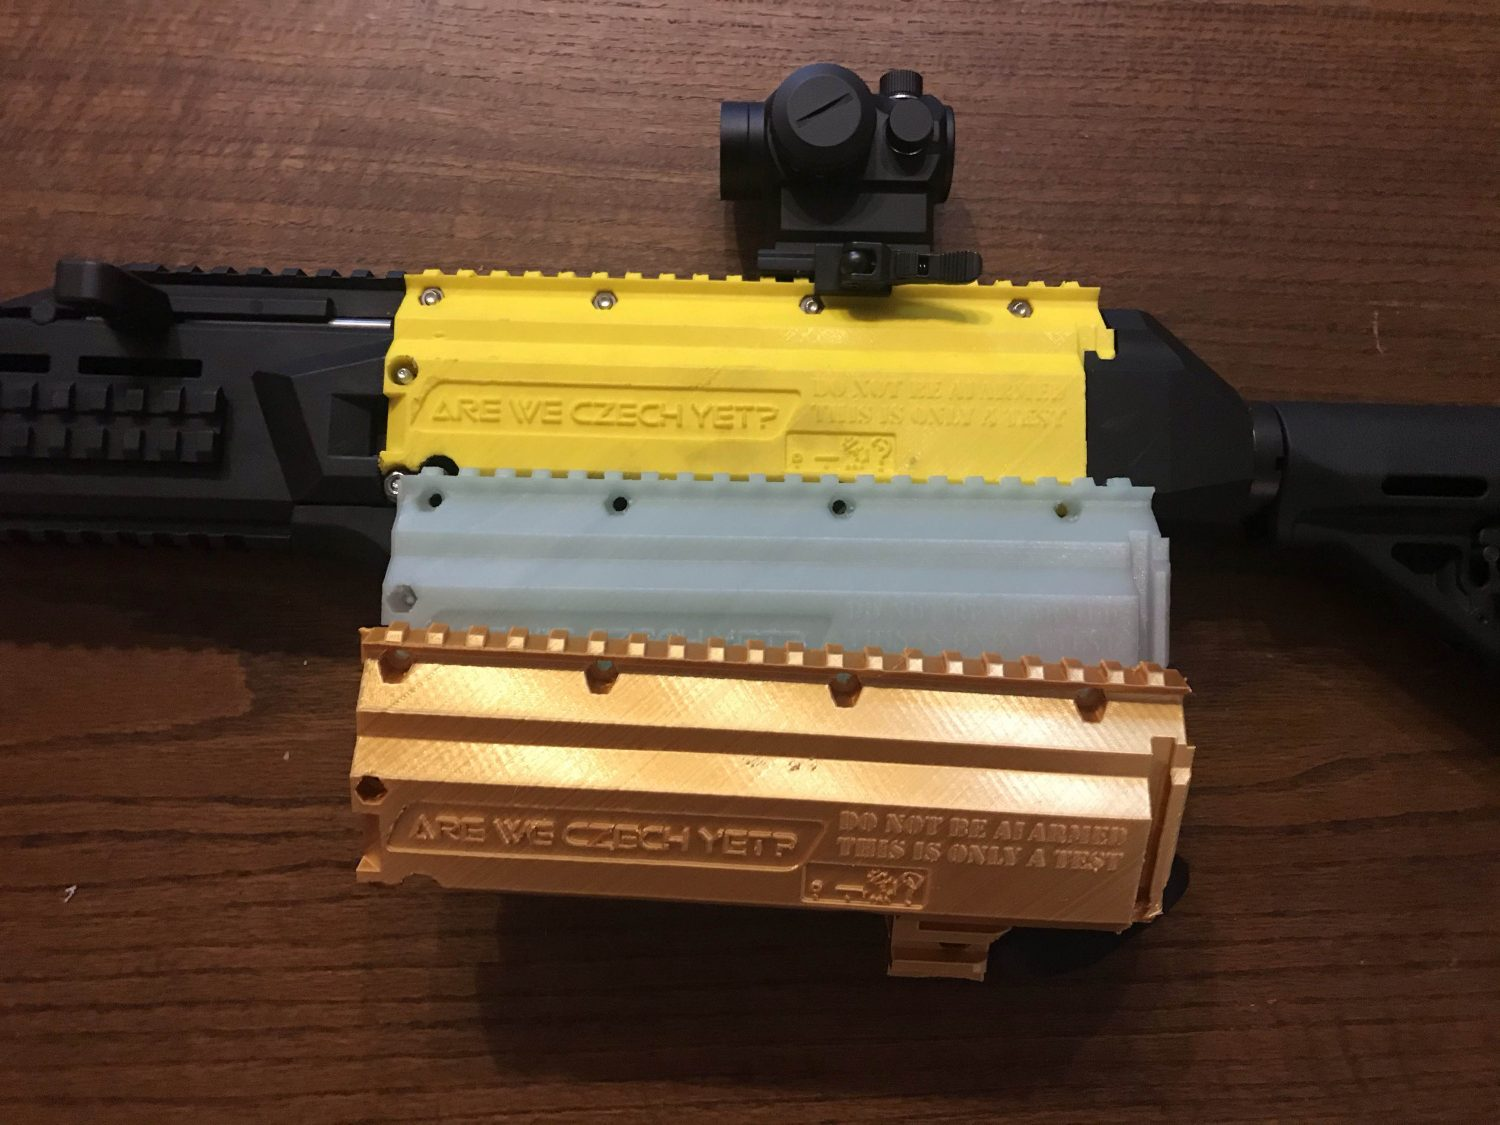 The AWCY 3D Printed Scz0rpion - Is a 3D printed Sub Gun Viable?